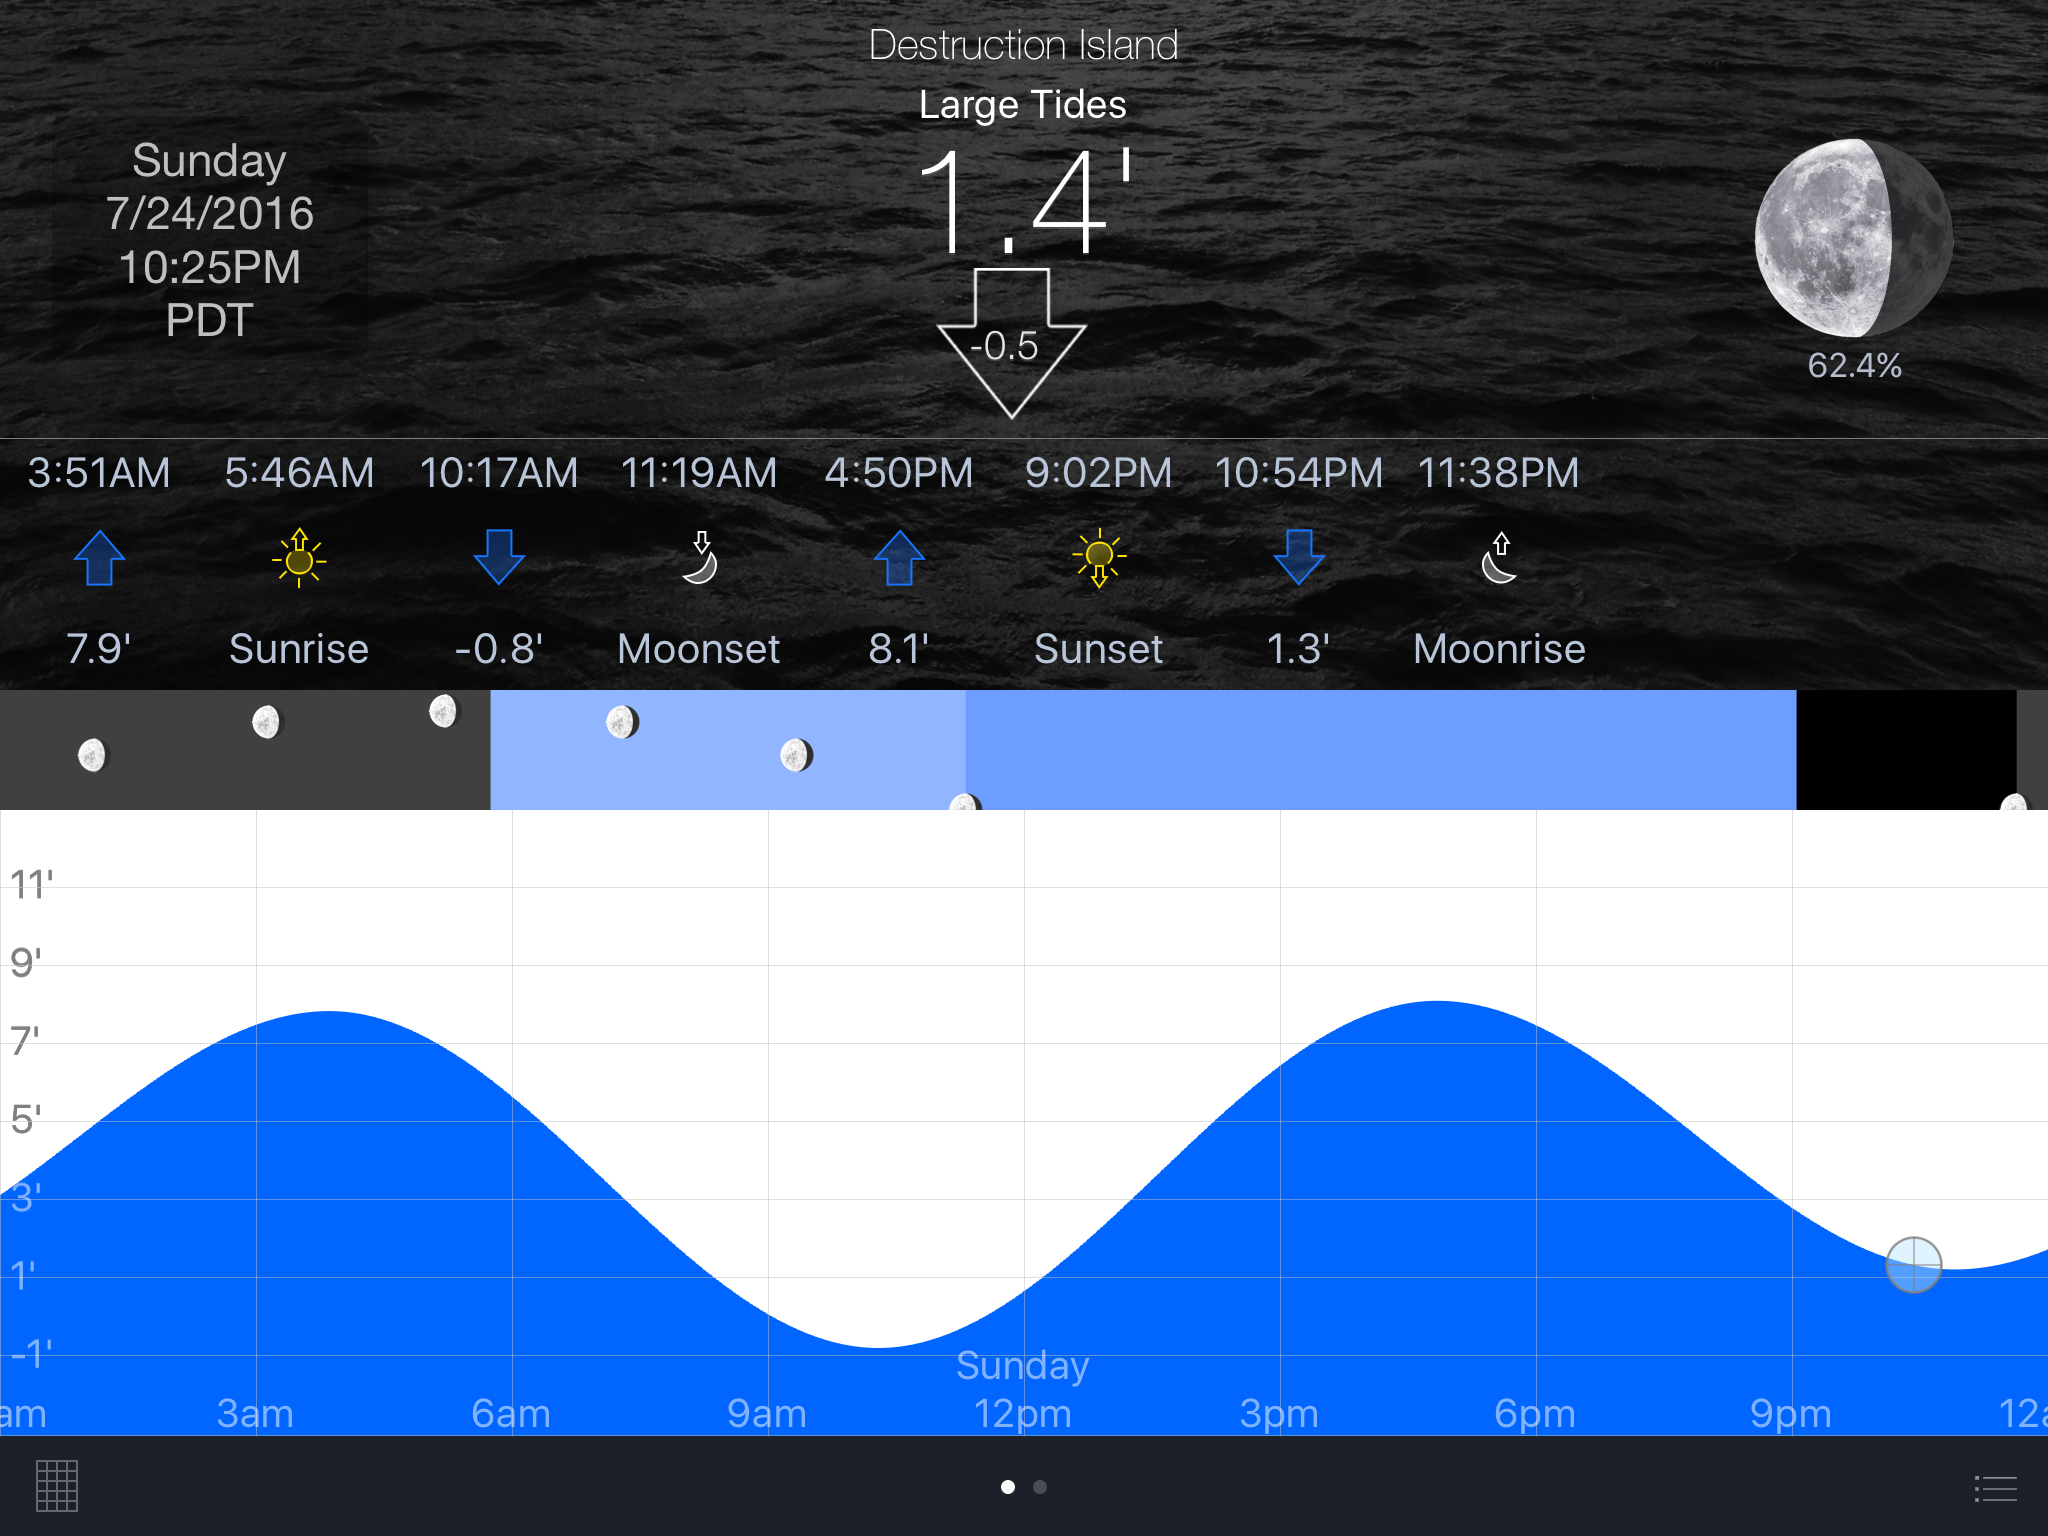 Figure 1. Tide Graph Pro showed me that the tide level during my shoot would be at about 1 foot above the zero tide height. I saw that the water would be at about 1 foot also around 1 p.m., so that is when I did my daytime scouting.